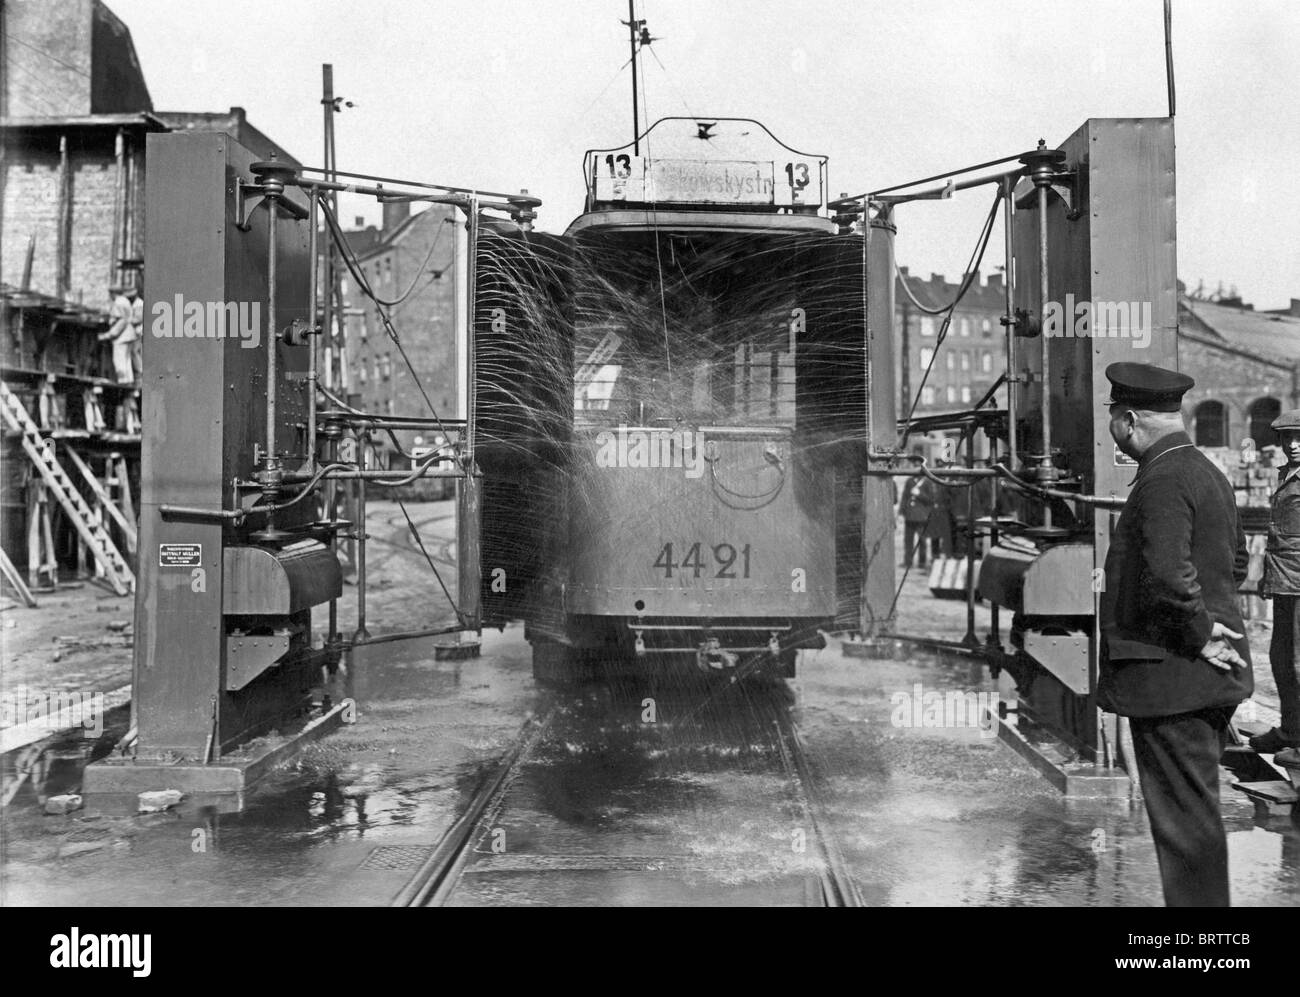 Washing plant for streetcars, historical image, 1925, Berlin, Germany, Europe - Stock Image